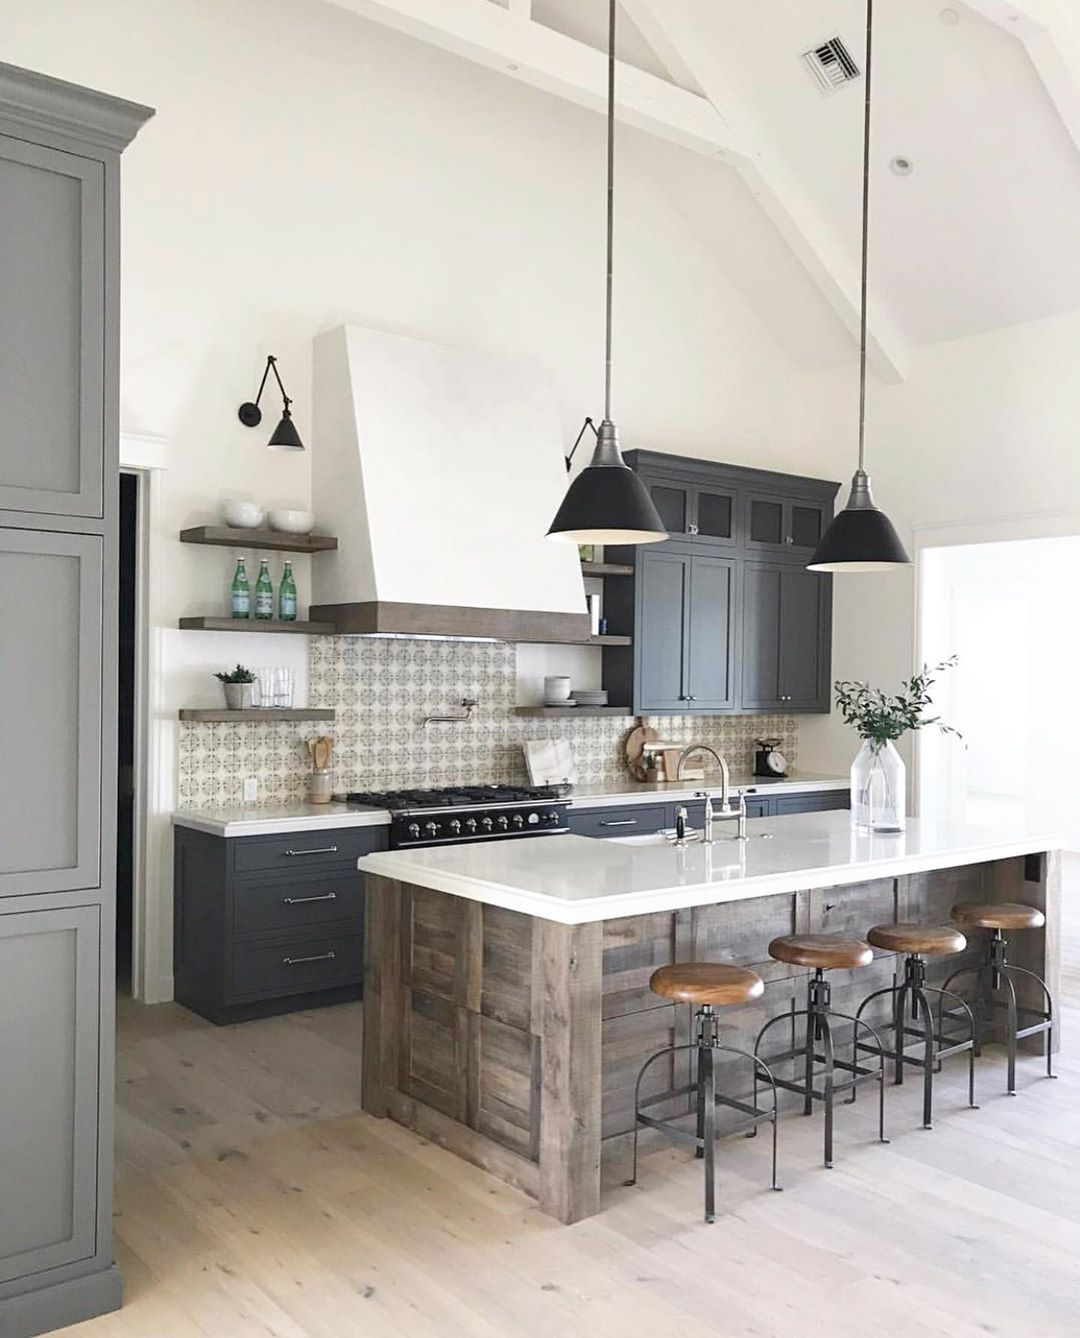 40 VERY BEAUTIFUL KITCHEN IDEAS FOR YOU! – Page 11 of 40 – My Blog